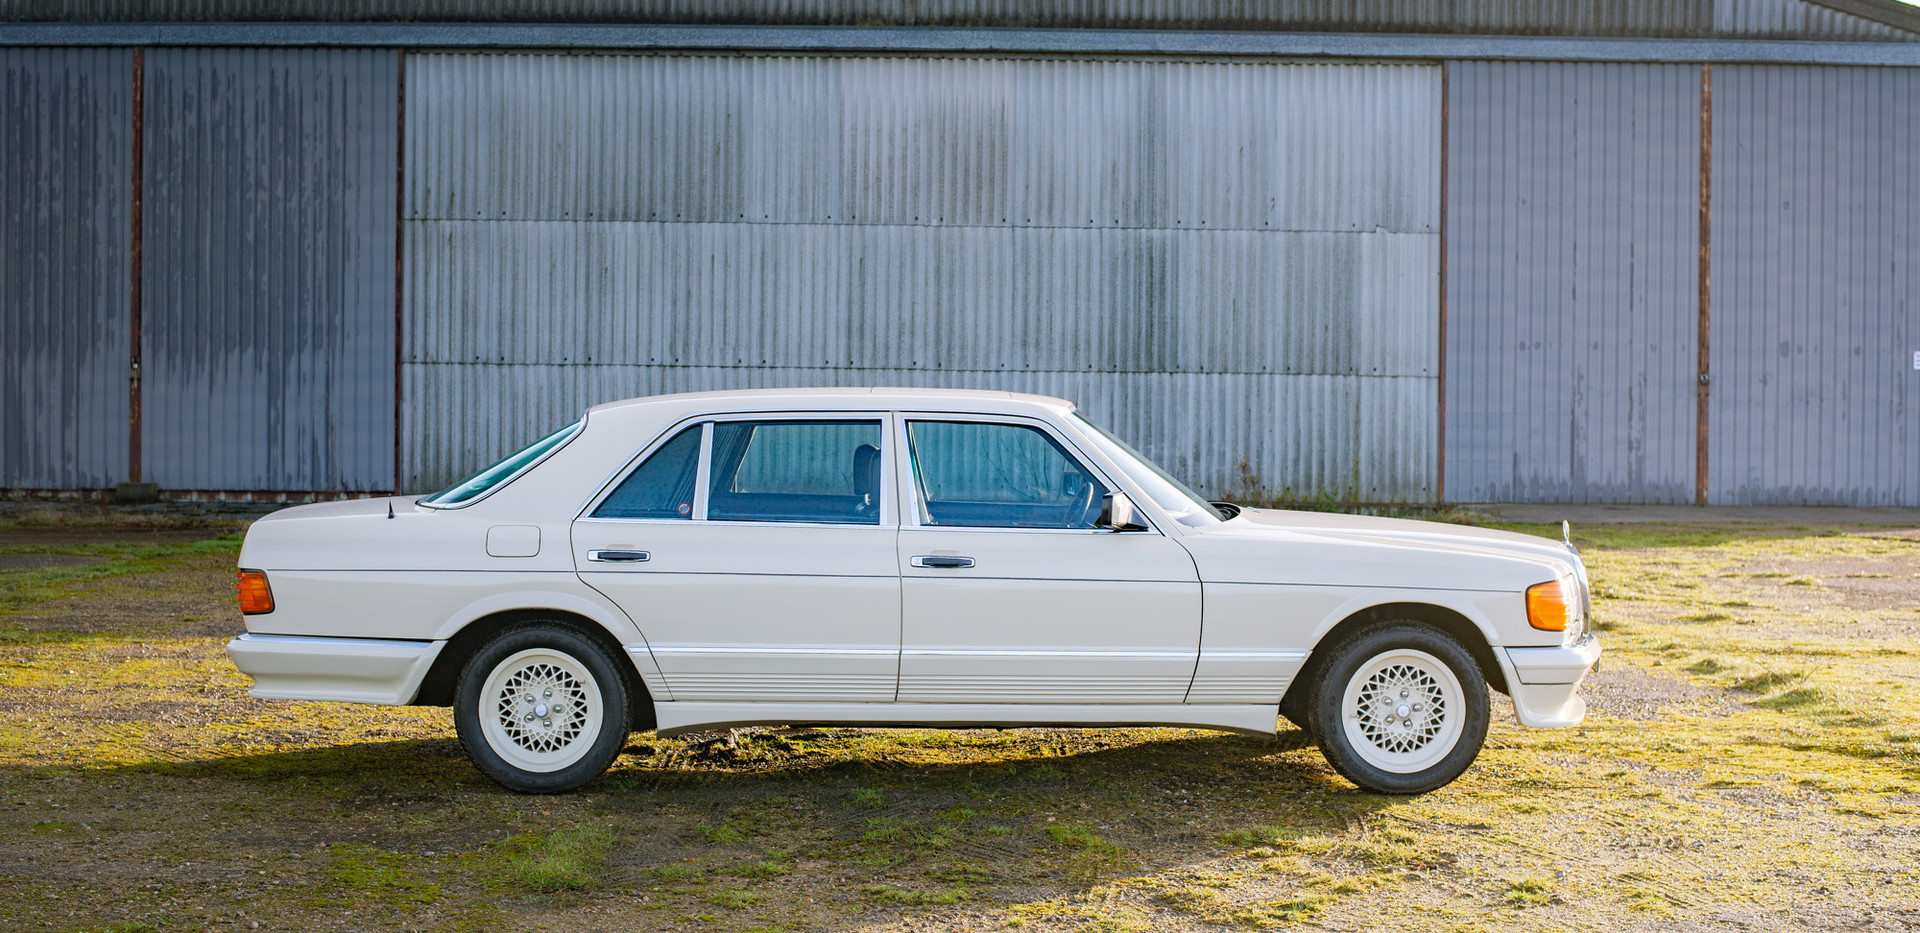 W126 Cream 500SEL for sale uk-8.jpg